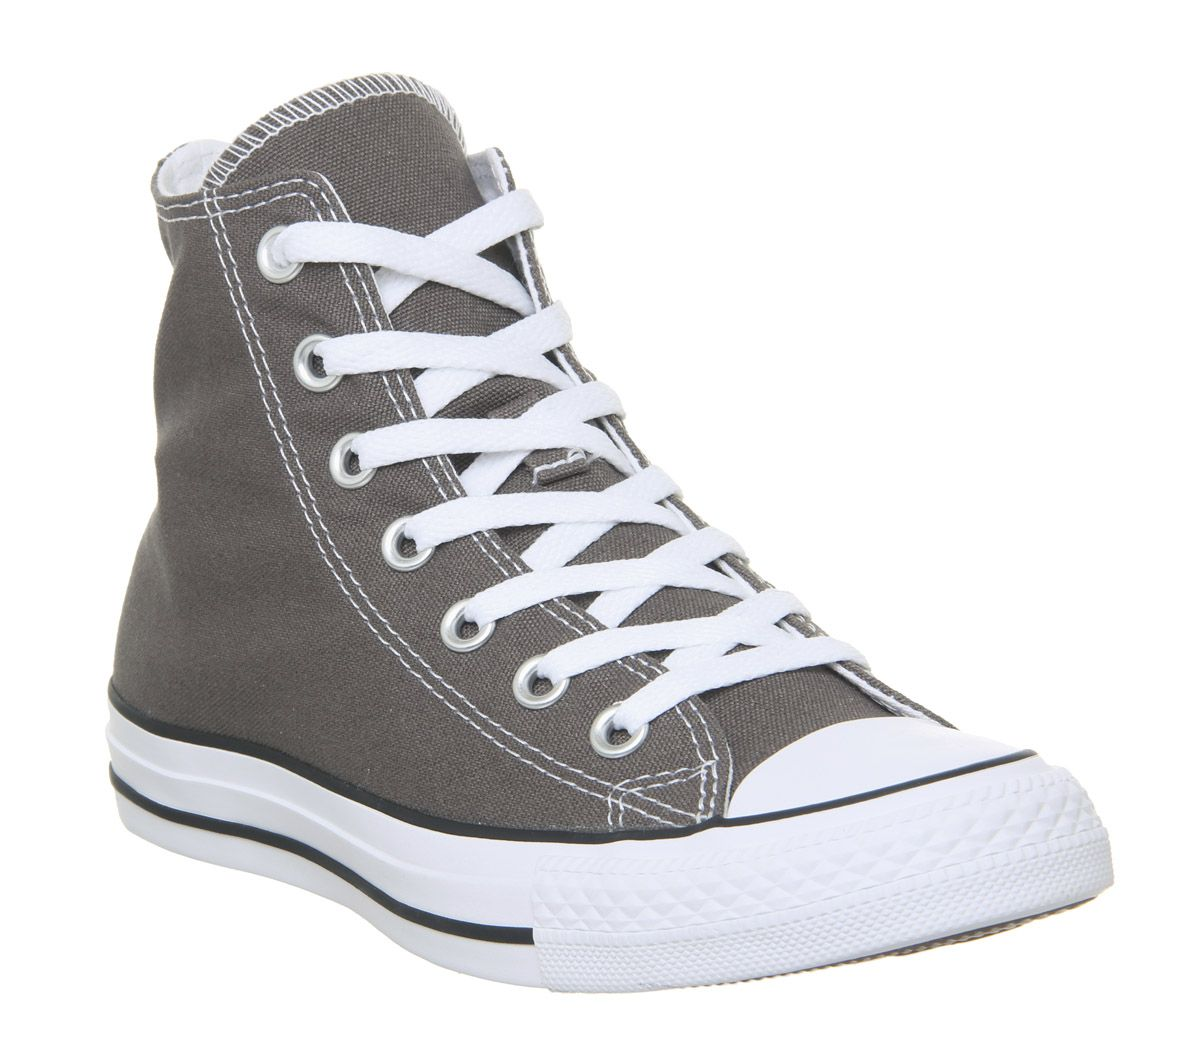 2556bee36ff2 Converse All Star Hi Charcoal - Unisex Sports